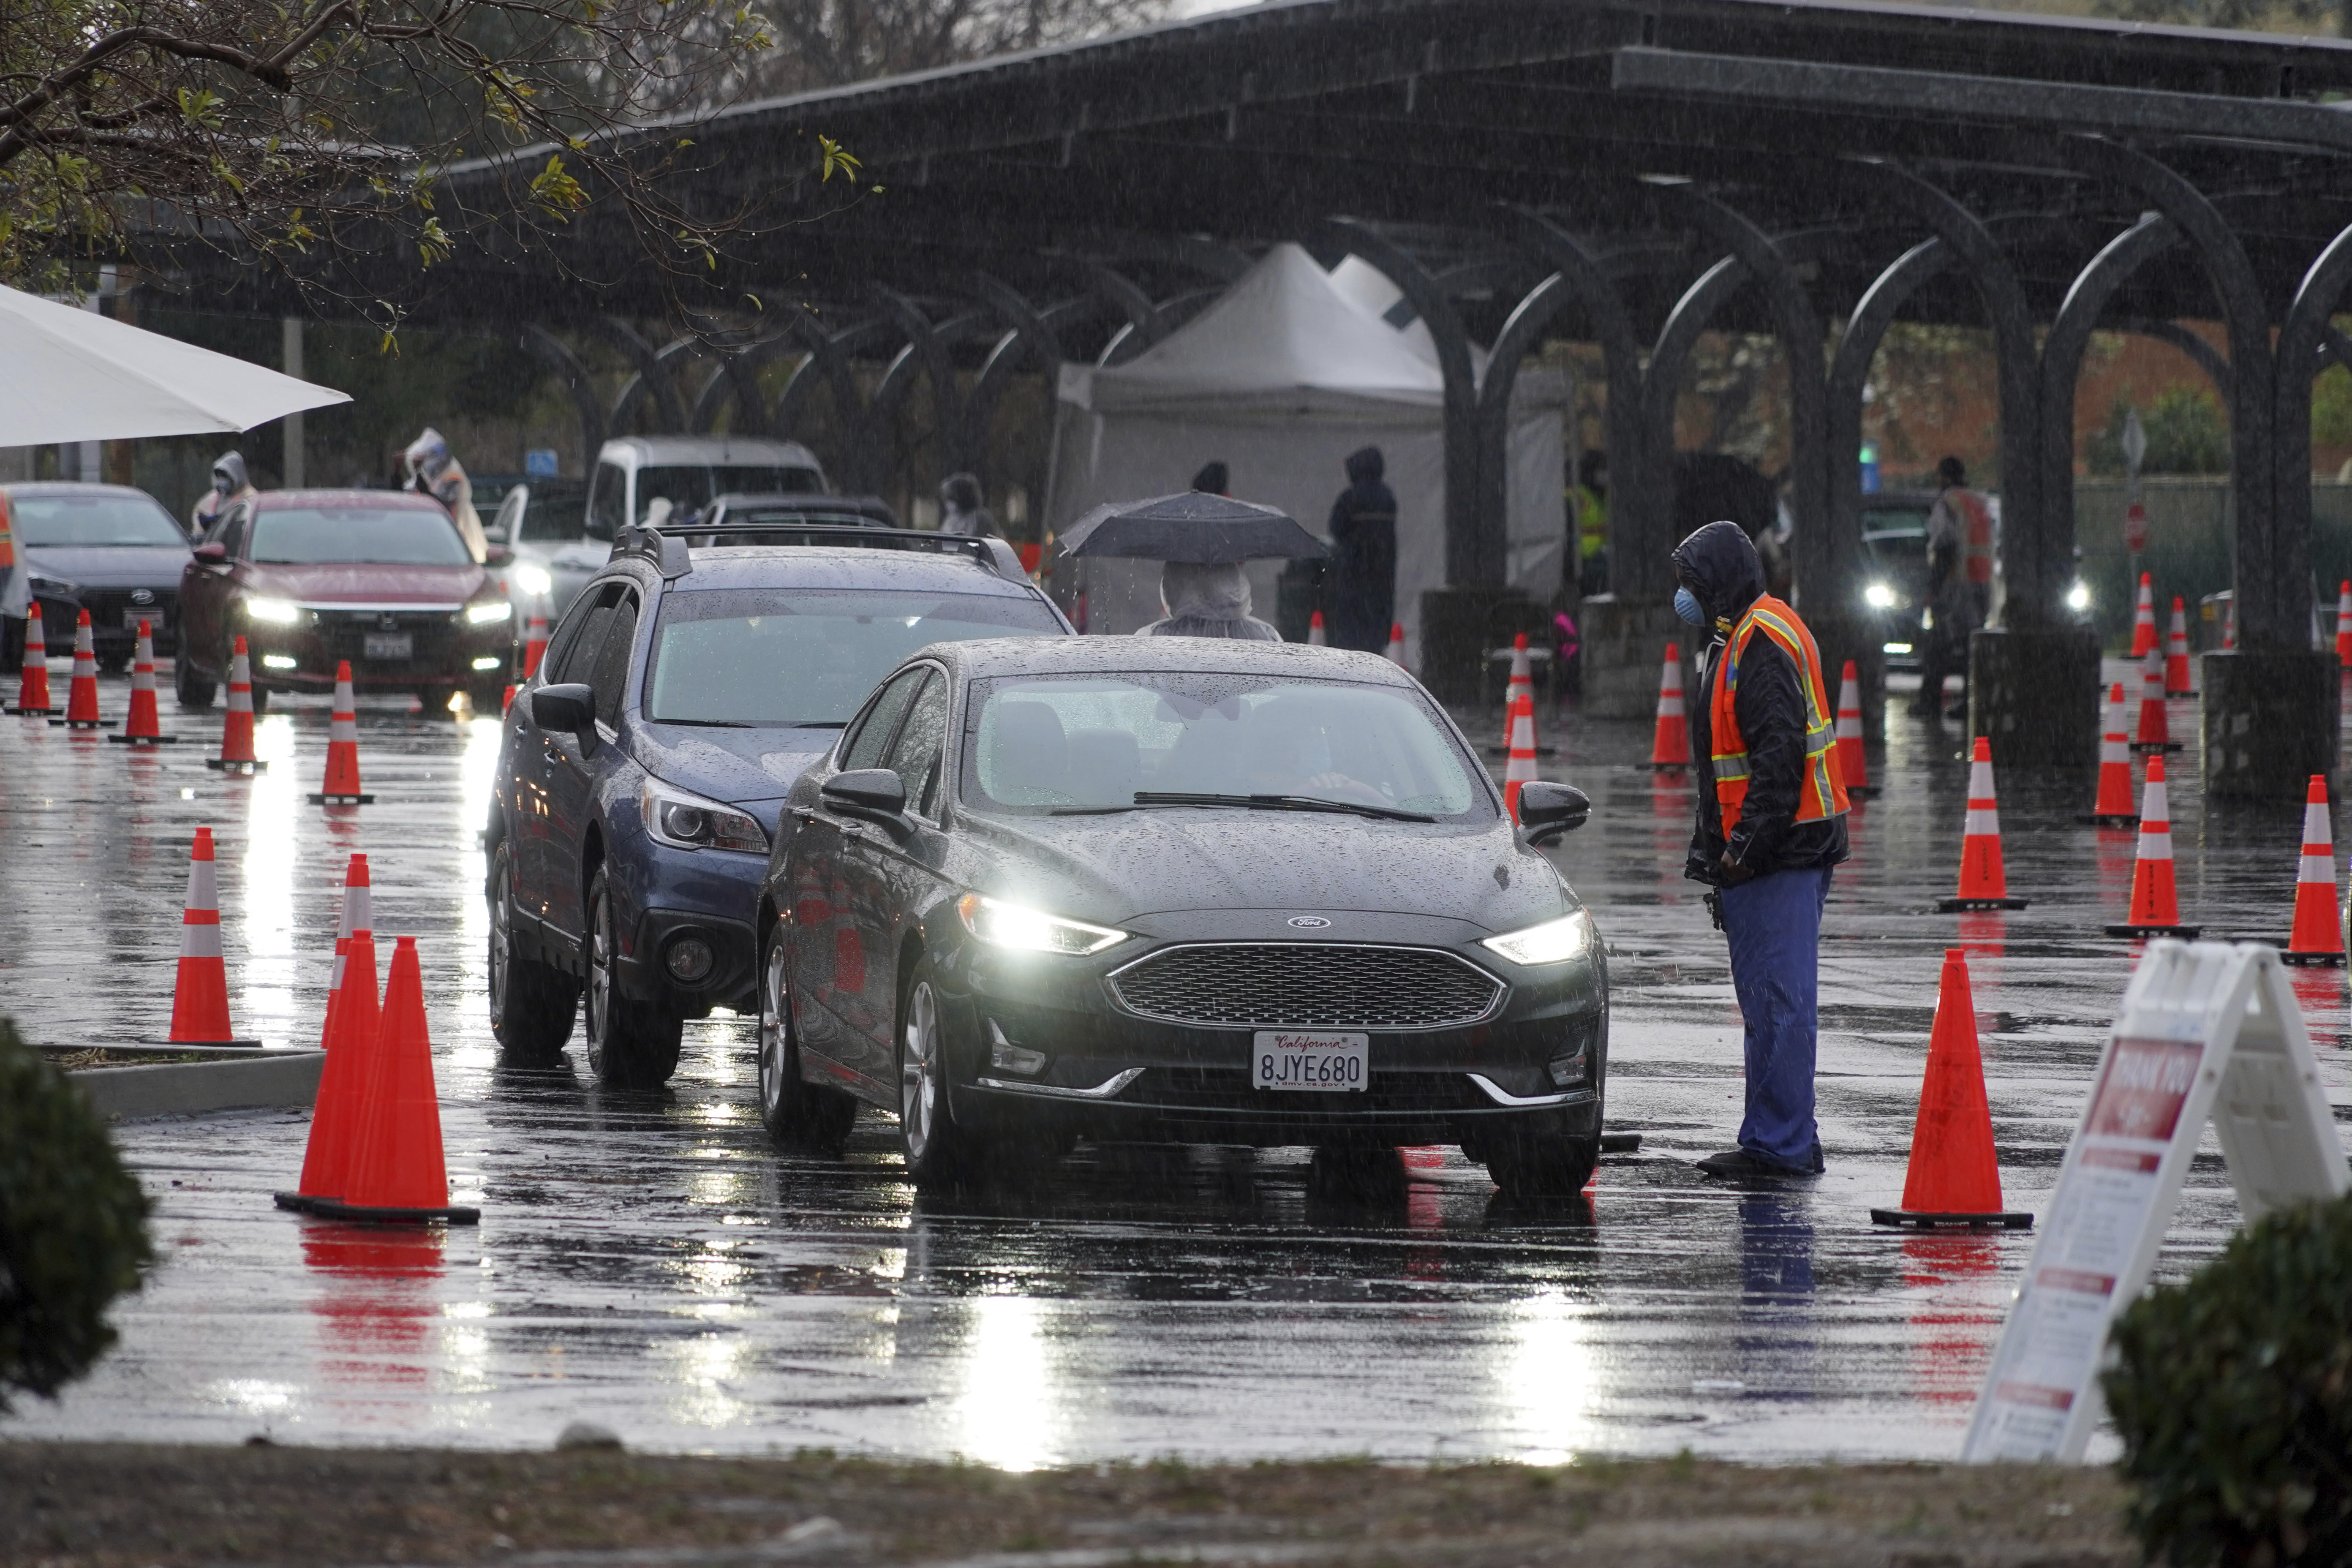 Los Angeles Still Suffering Near-Record Daily Covid-19 Deaths; Toll Expected To Remain High For Weeks Even As Cases Drop